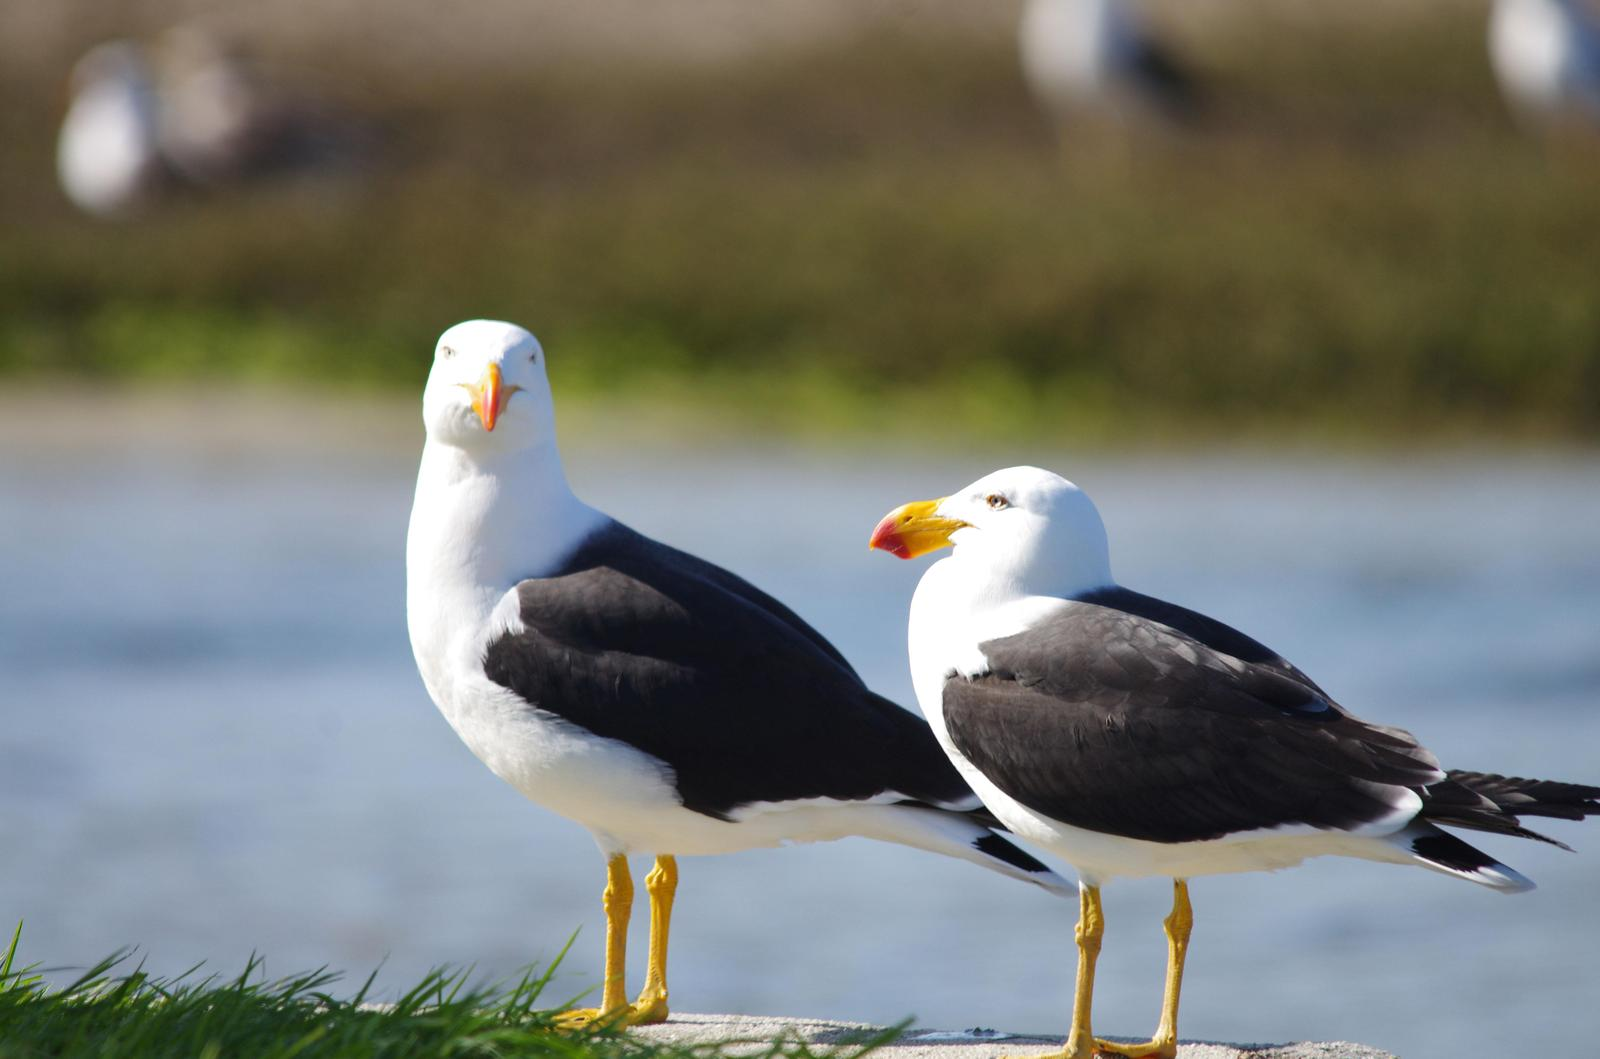 Pacific Gull Photo by Richard Lund